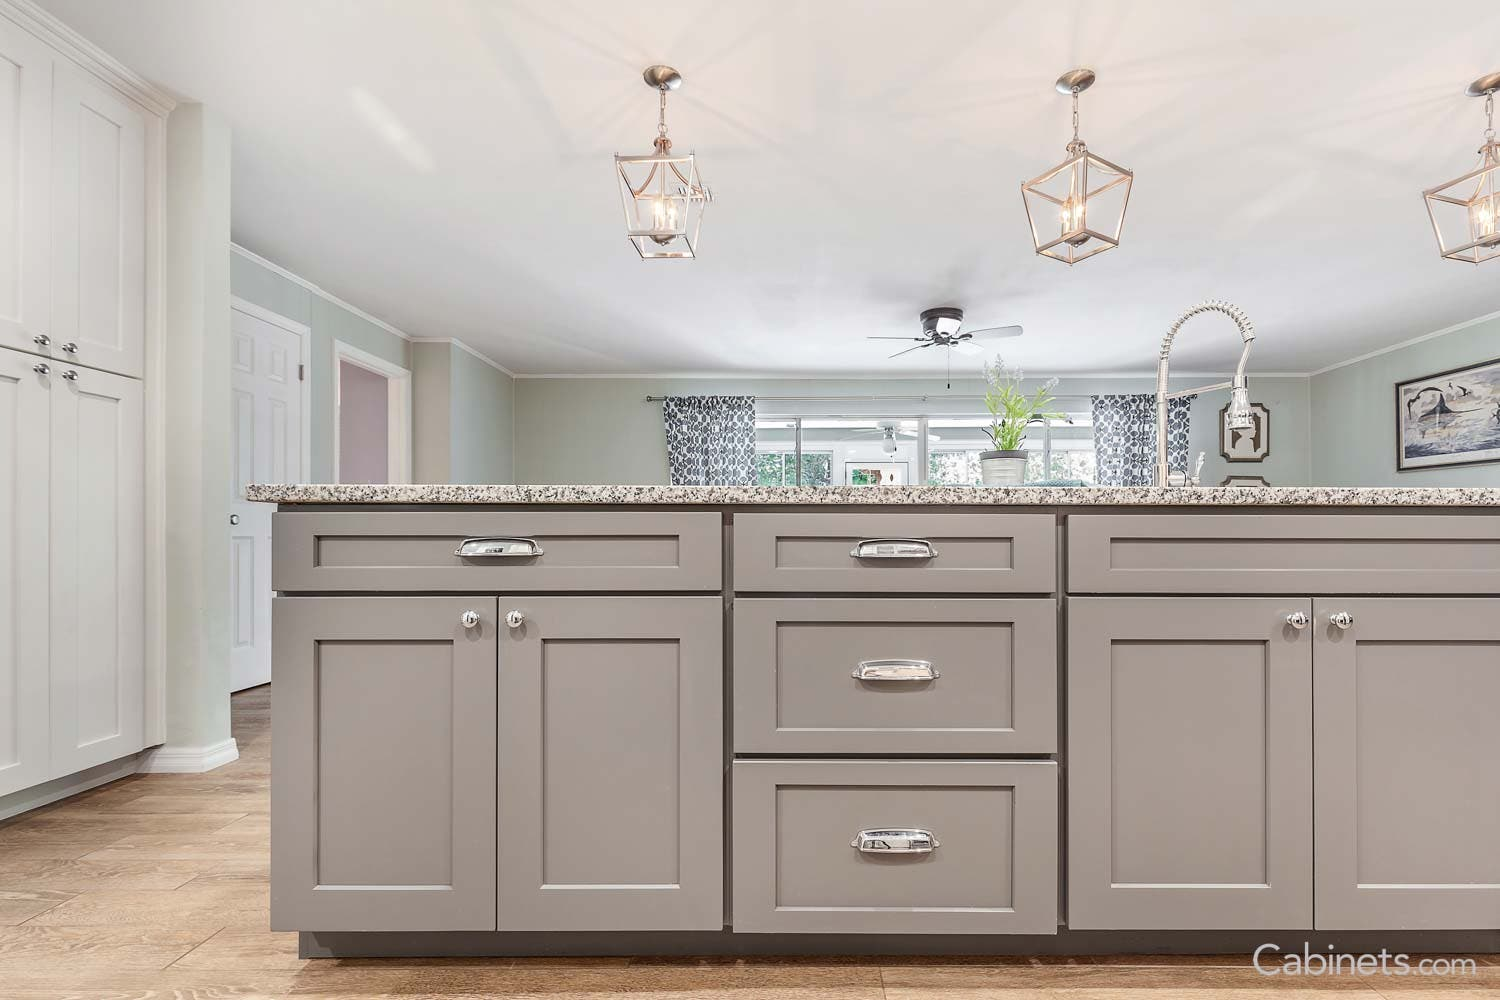 How To Install Kitchen Cabinet Handles Cabinets Com